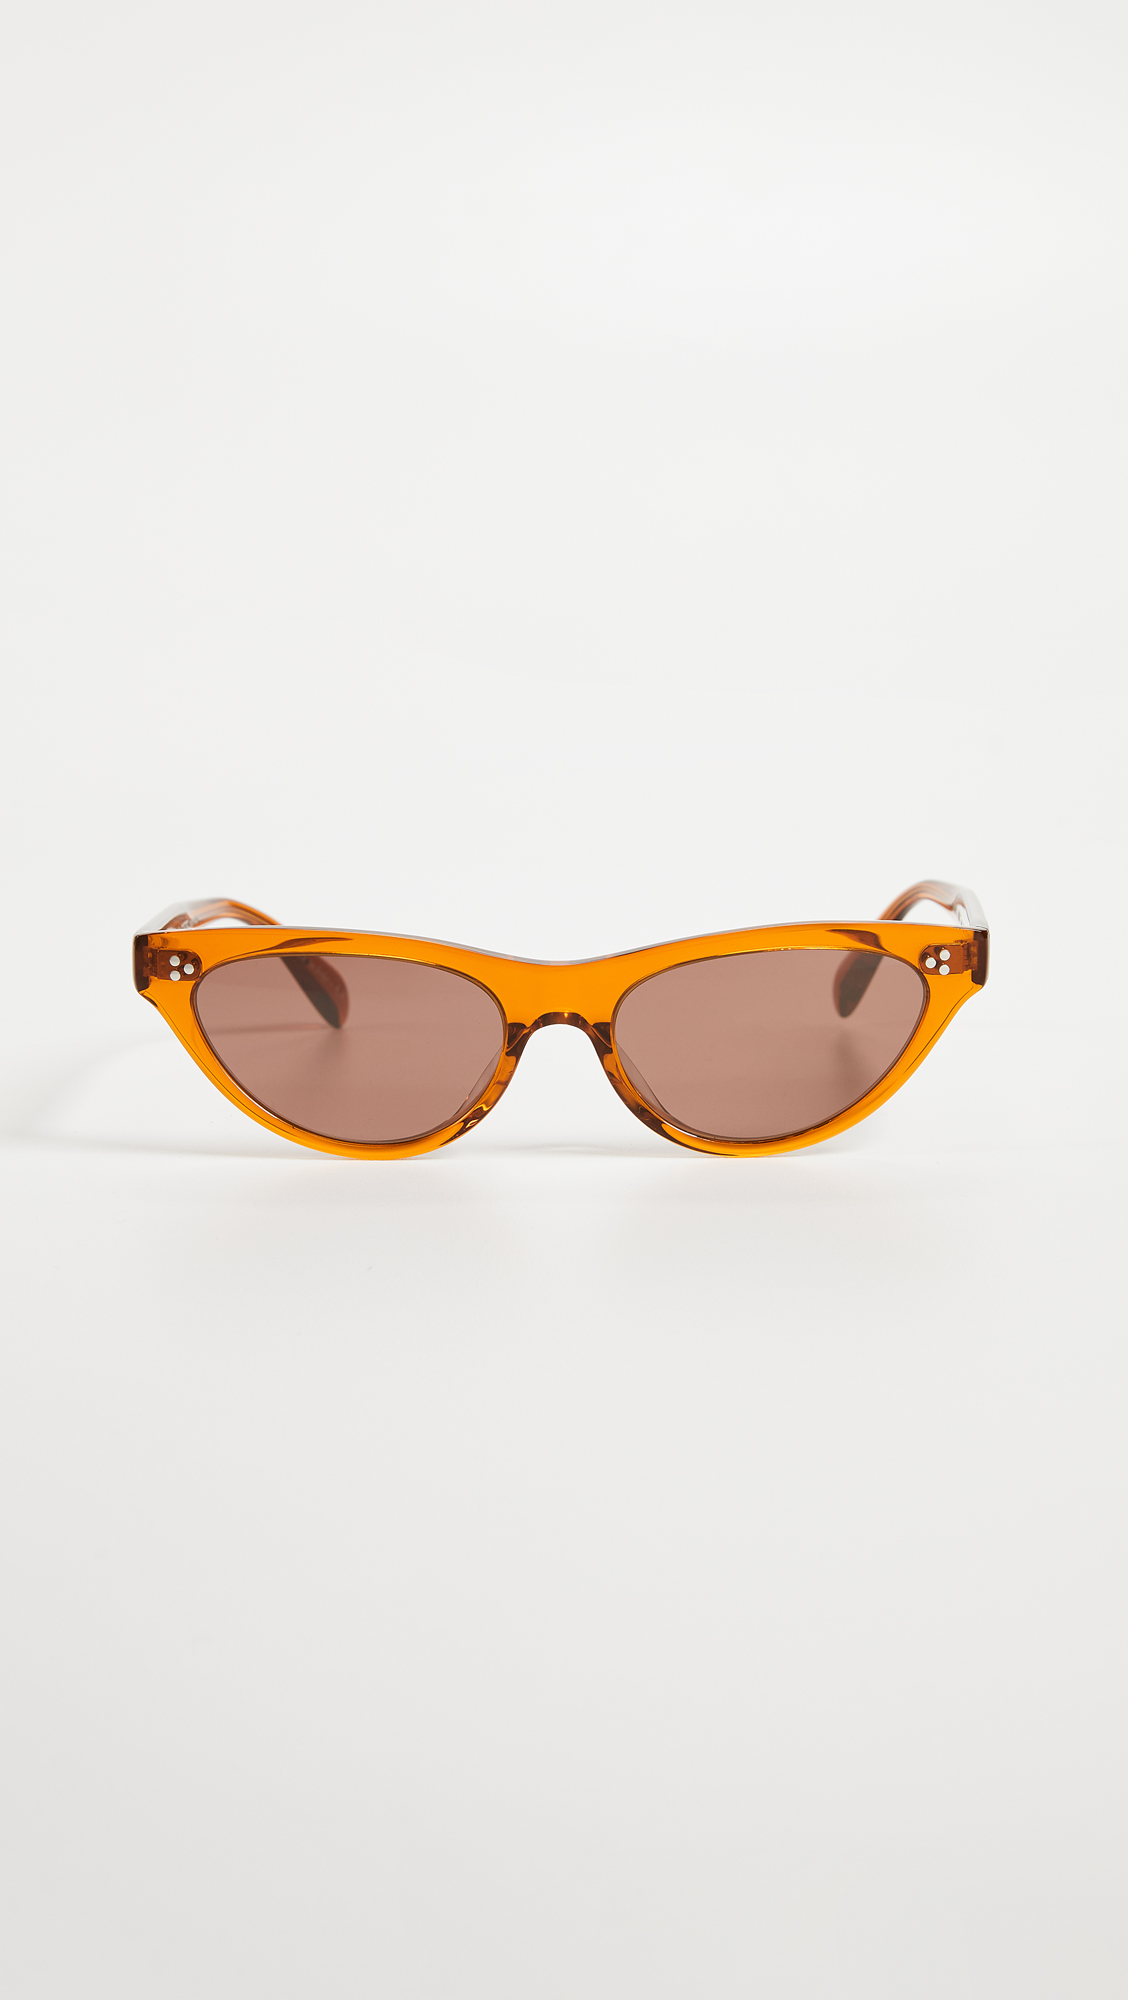 14b4d6cc99 Cool Orange Sunglasses Trend For Women Summer 2018